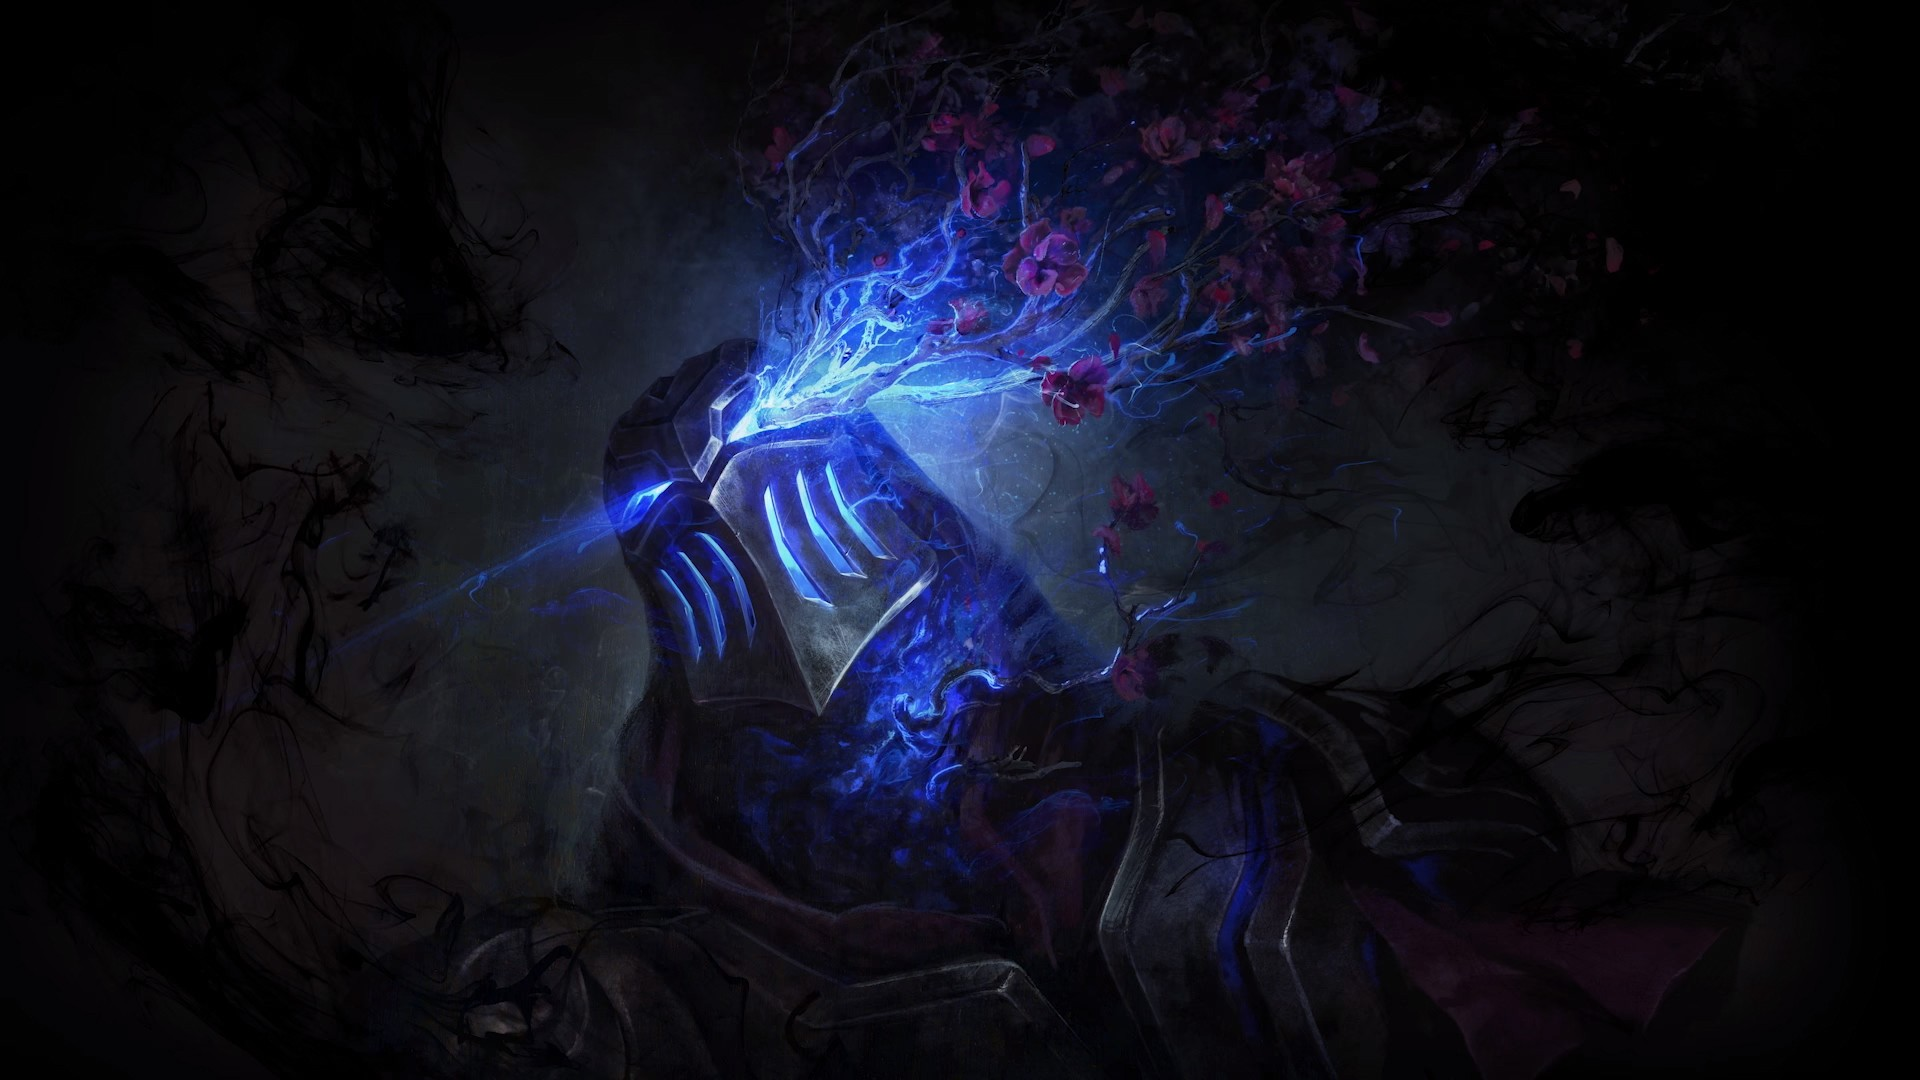 General 1920x1080 Zed (League of Legends) Zed video games fan art fantasy art